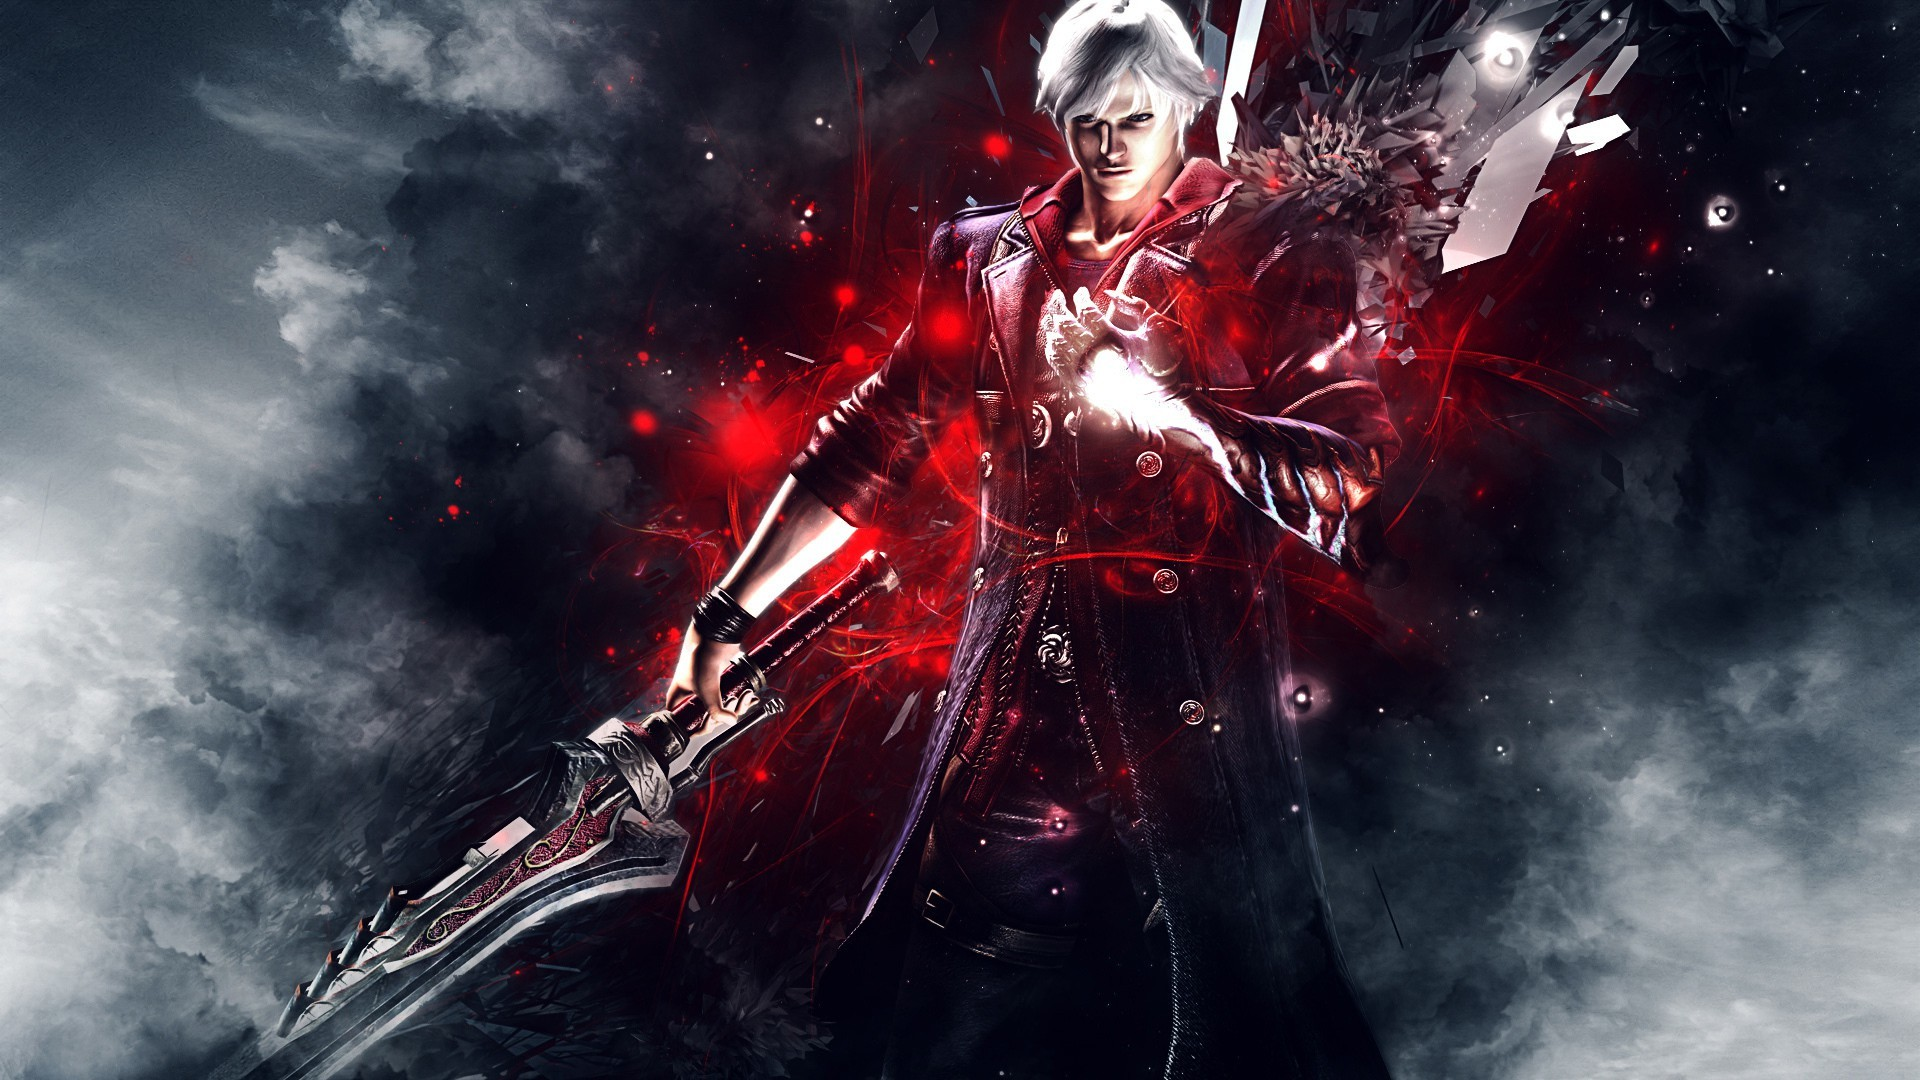 Devil may cry hd wallpaper 72 images - Devil may cry hd pics ...